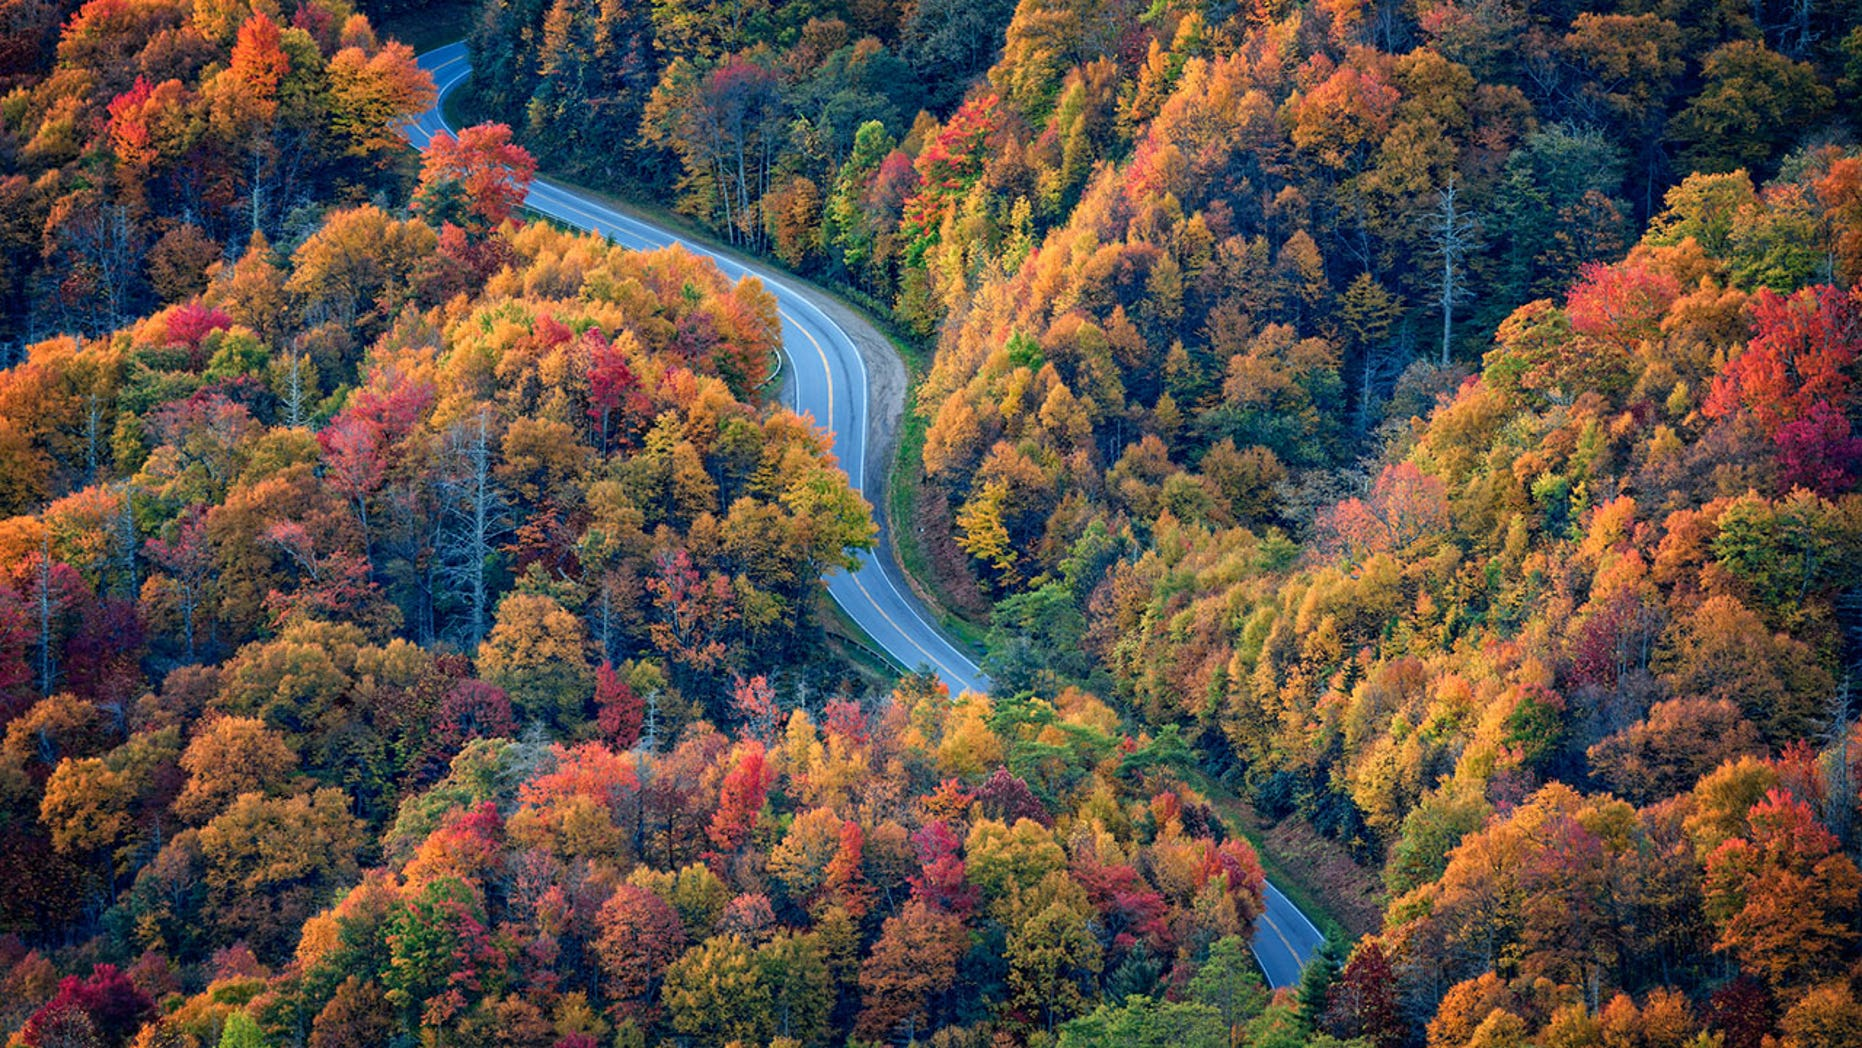 Many will now be able to see fall foliage in its full splendor for the first time.